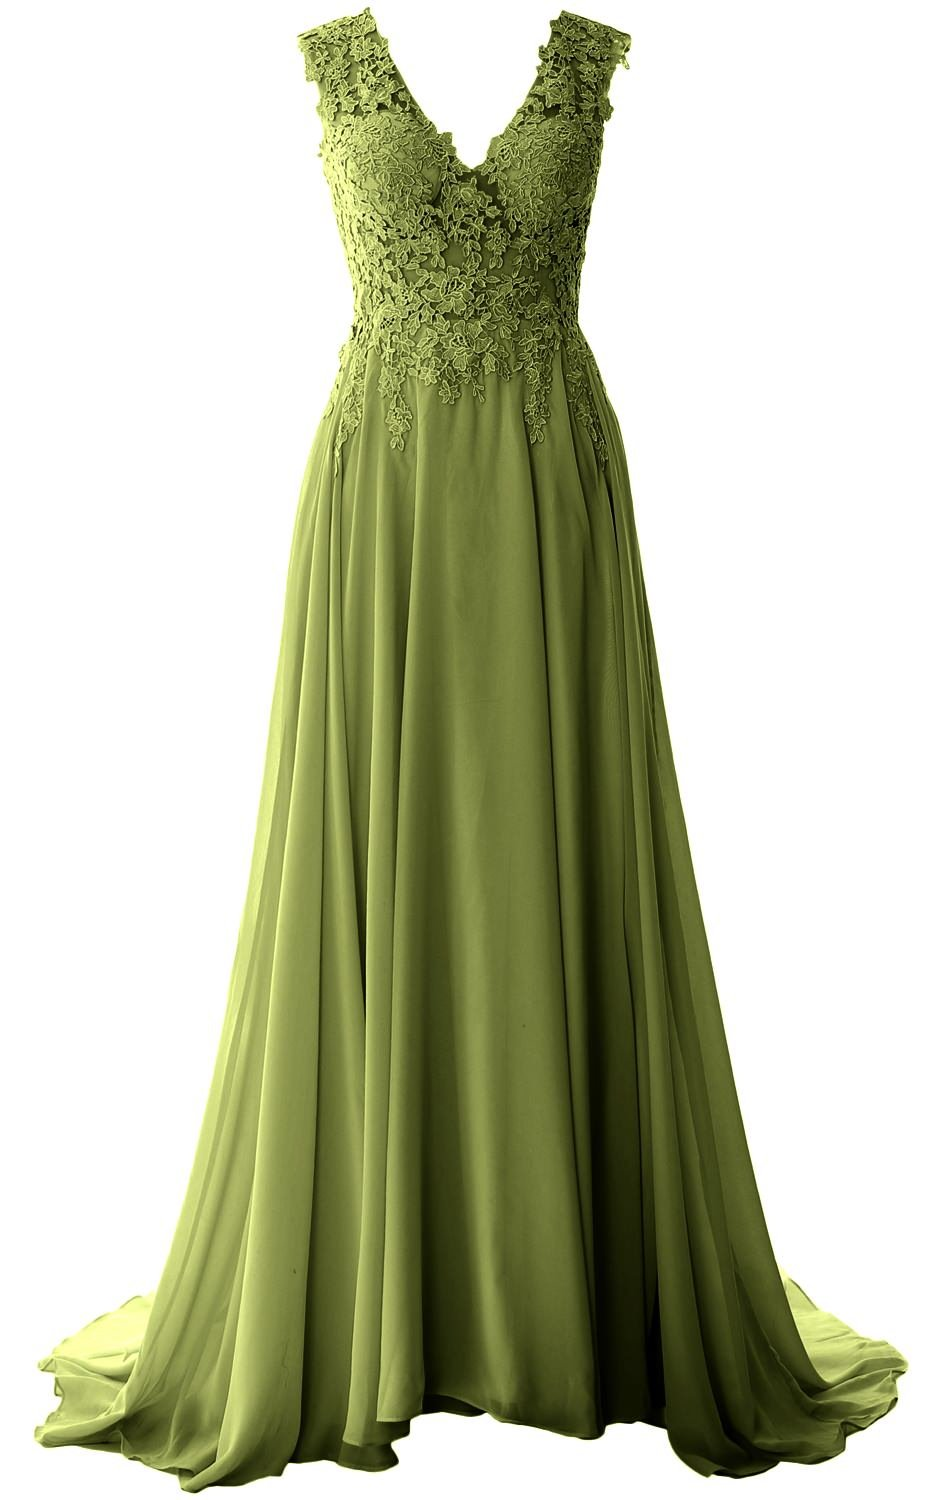 MACloth Elegant V Neck Long Prom Dress Vintage Lace Chiffon Formal Evening Gown (8, Olive Green)